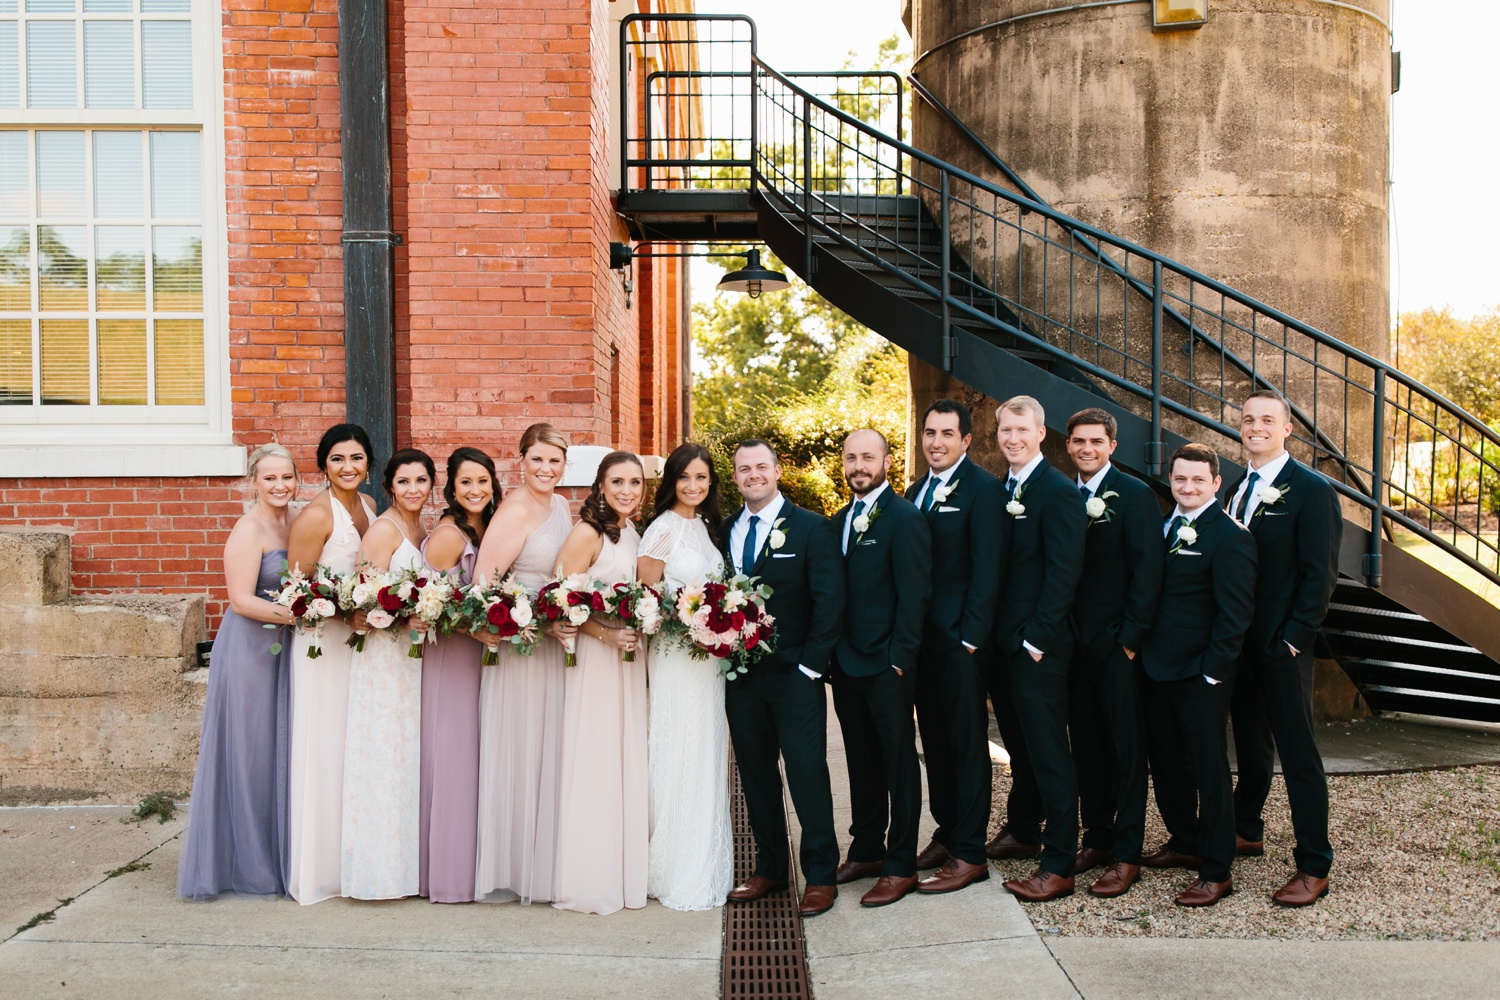 Kadee + Tyler | a raw, emotional wedding at the Filter Building on White Rock Lake in Dallas, TX by North Texas Wedding Photographer, Rachel Meagan Photography 091